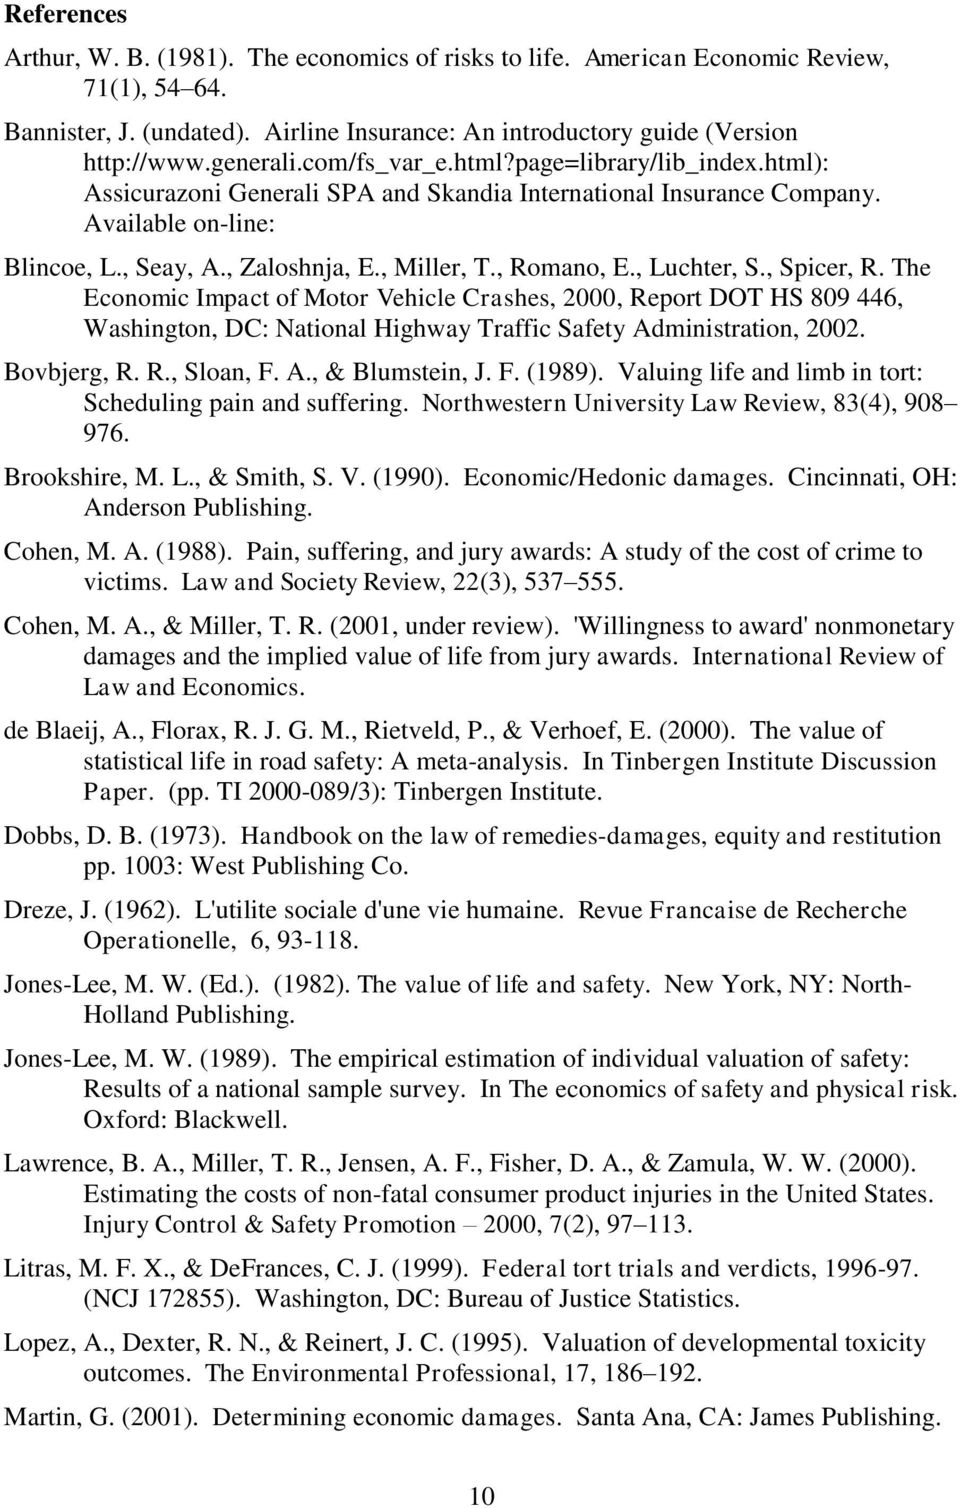 , Luchter, S., Spicer, R. The Economic Impact of Motor Vehicle Crashes, 2000, Report DOT HS 809 446, Washington, DC: National Highway Traffic Safety Administration, 2002. Bovbjerg, R. R., Sloan, F. A., & Blumstein, J.